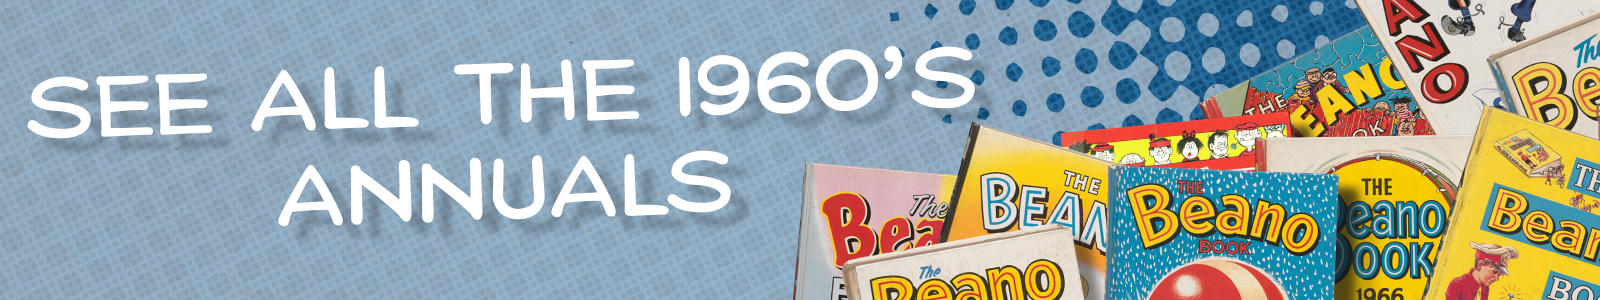 Click here to see all the 1960's Annuals!